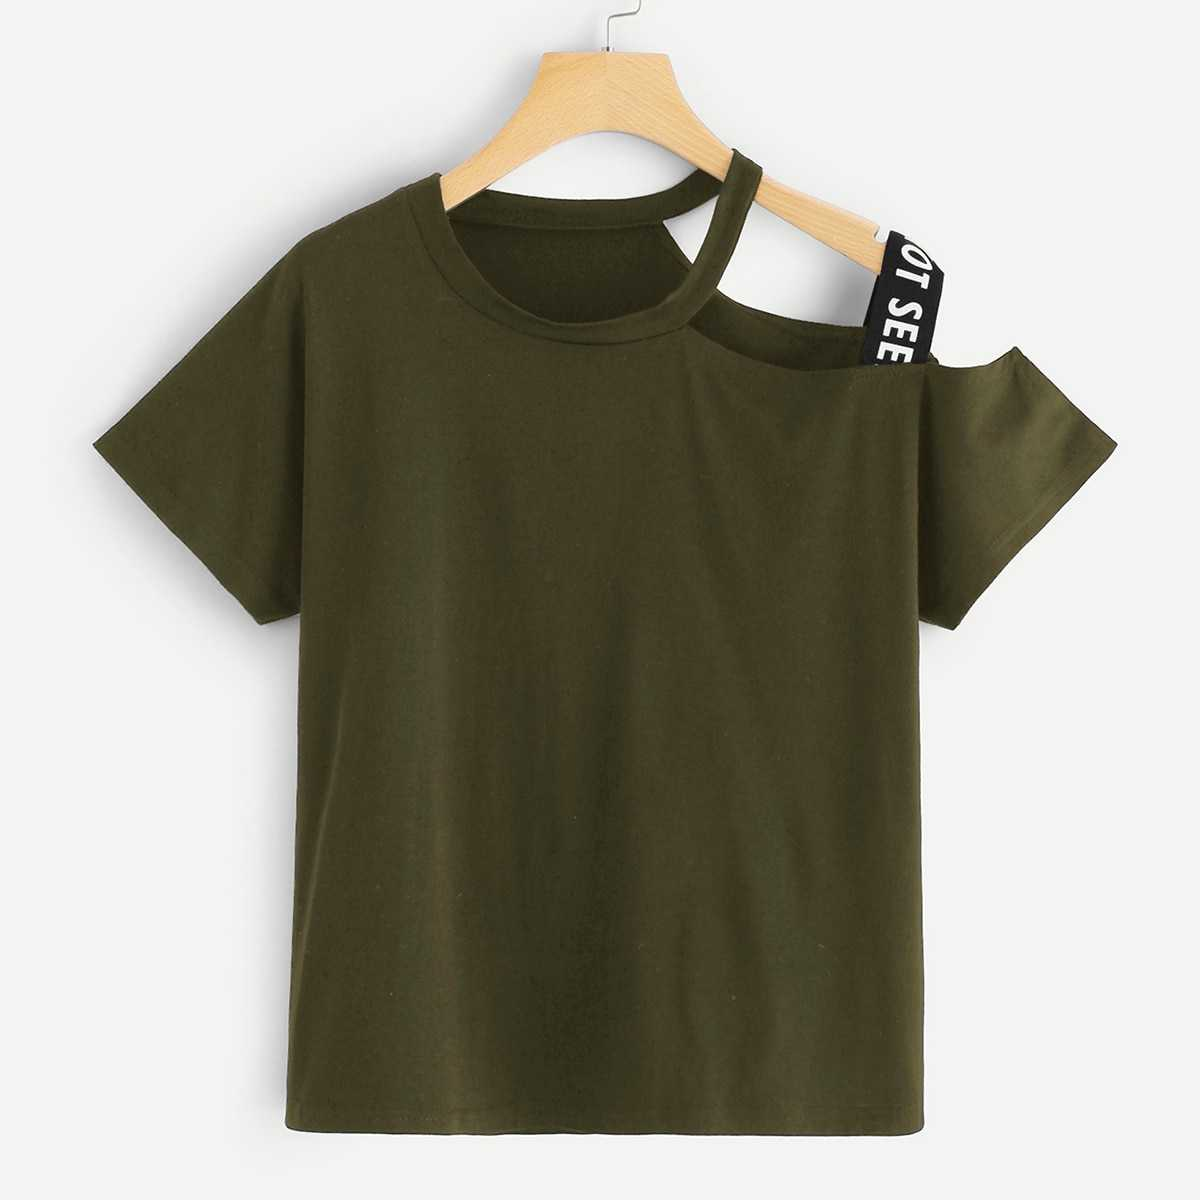 Asymmetrical Neck Letter Taped Tee in Army Green by ROMWE on GOOFASH